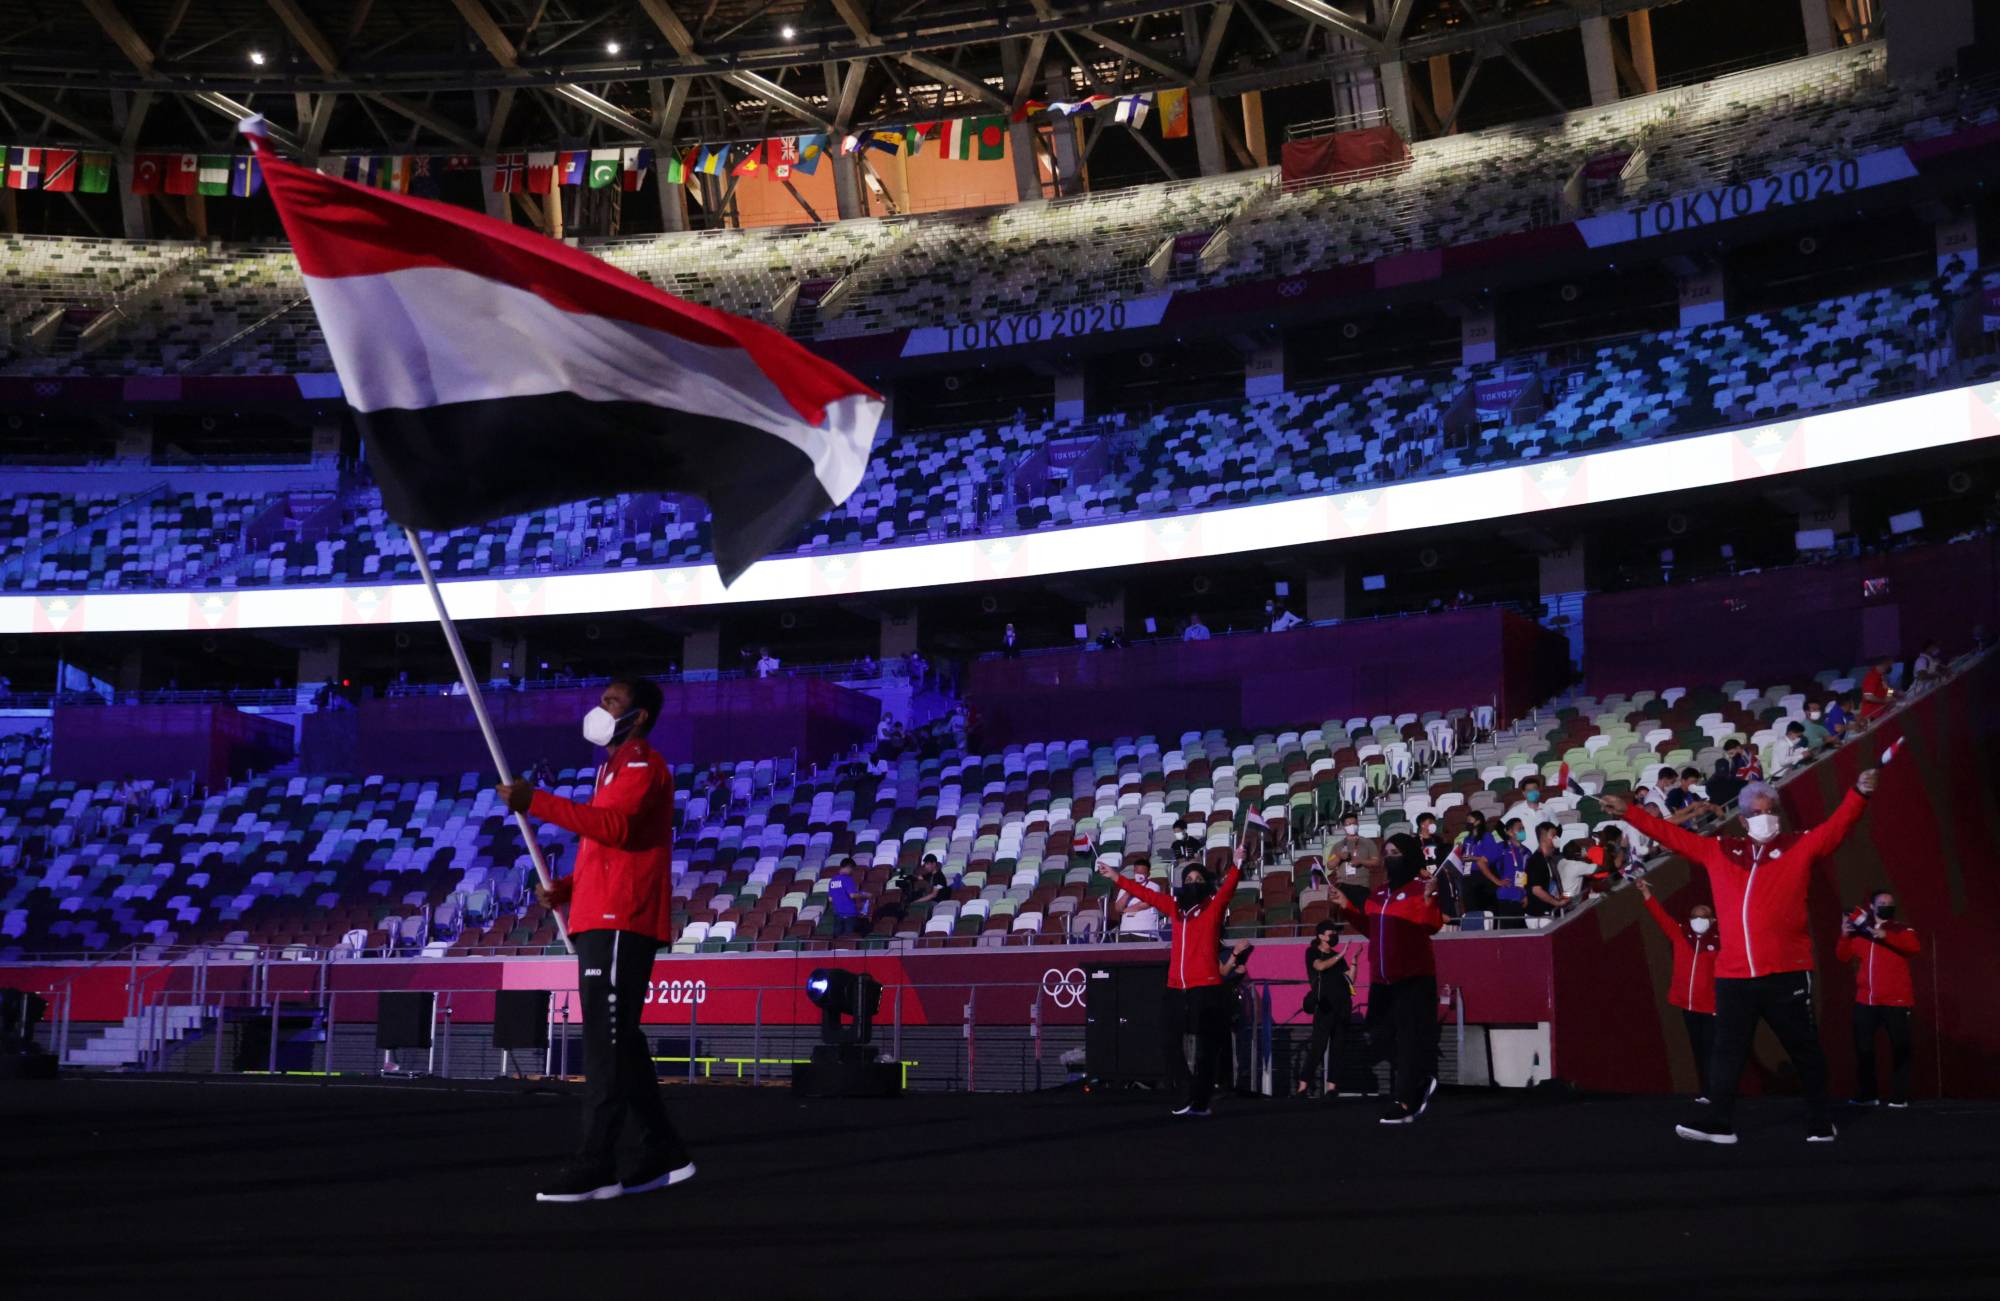 Flagbearer Yasameen Al Raimi of Yemen lead his contingent in the athletes parade during the Tokyo Olympics opening ceremony Friday. Countries were listed by their Japanese pronunciation. For example, Yemen — 'Iemen' in Japanese — came near the front, not the back. | REUTERS